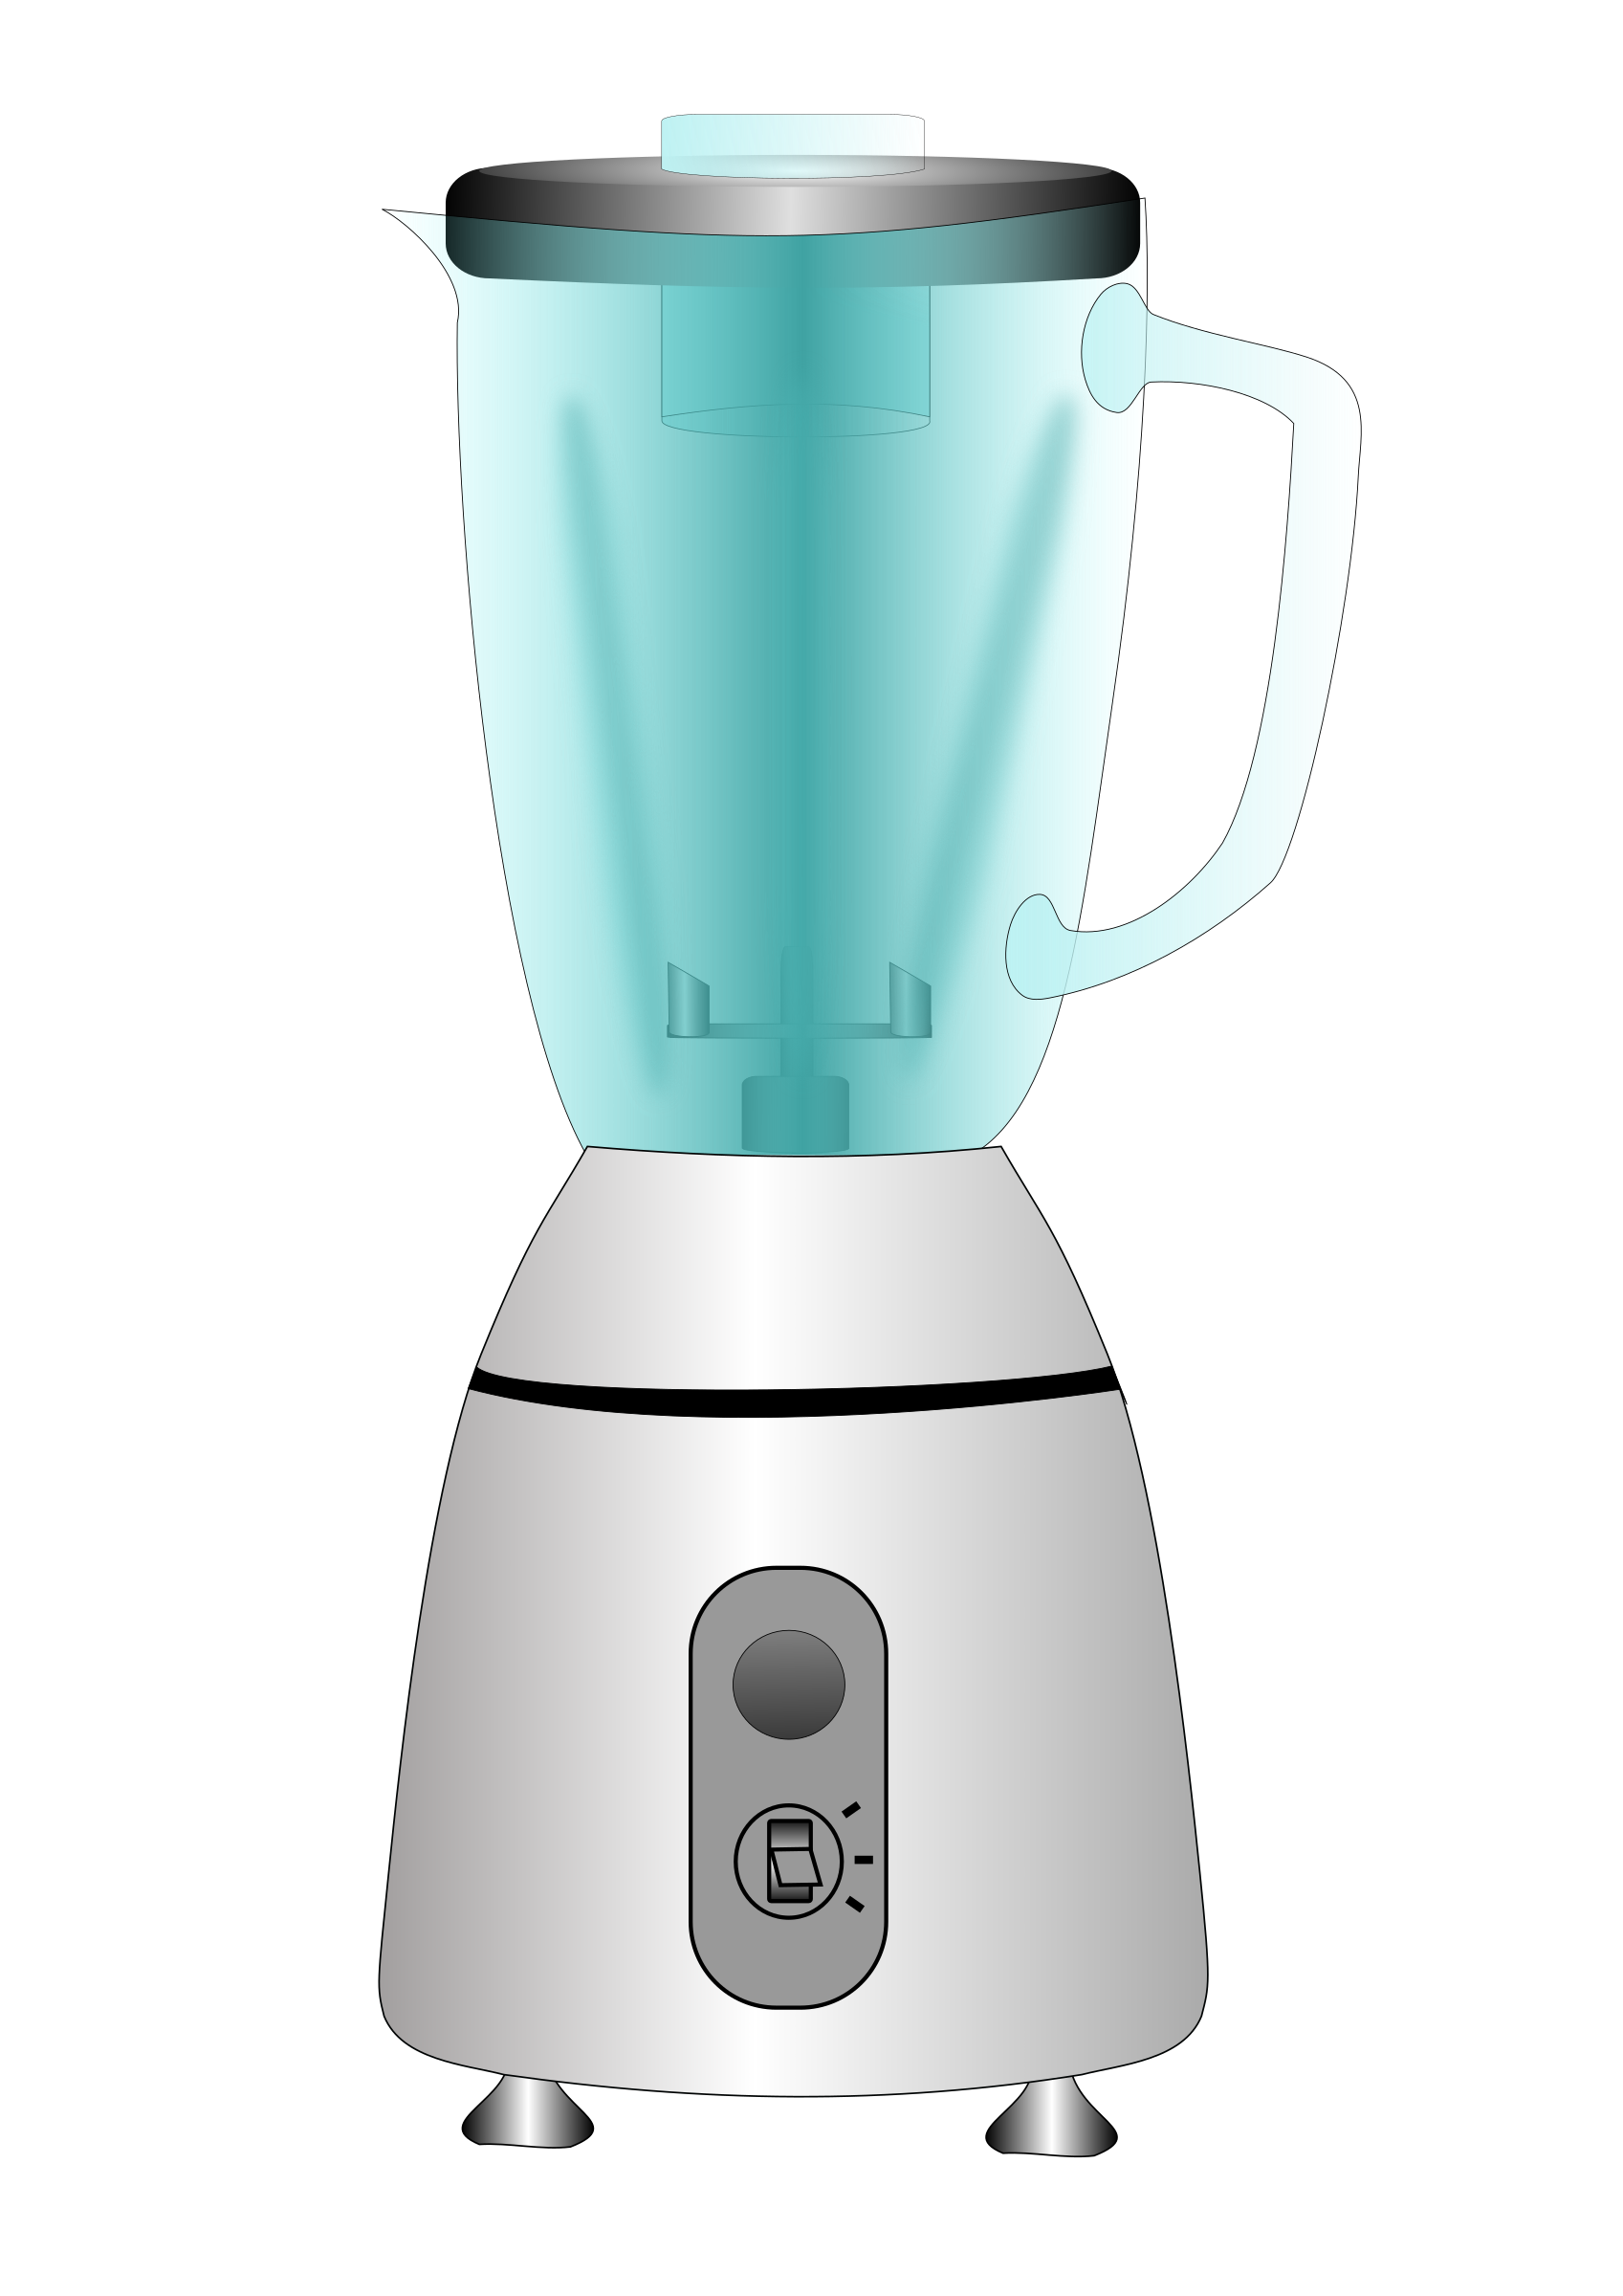 Kitchen mixer/blender by Juhele